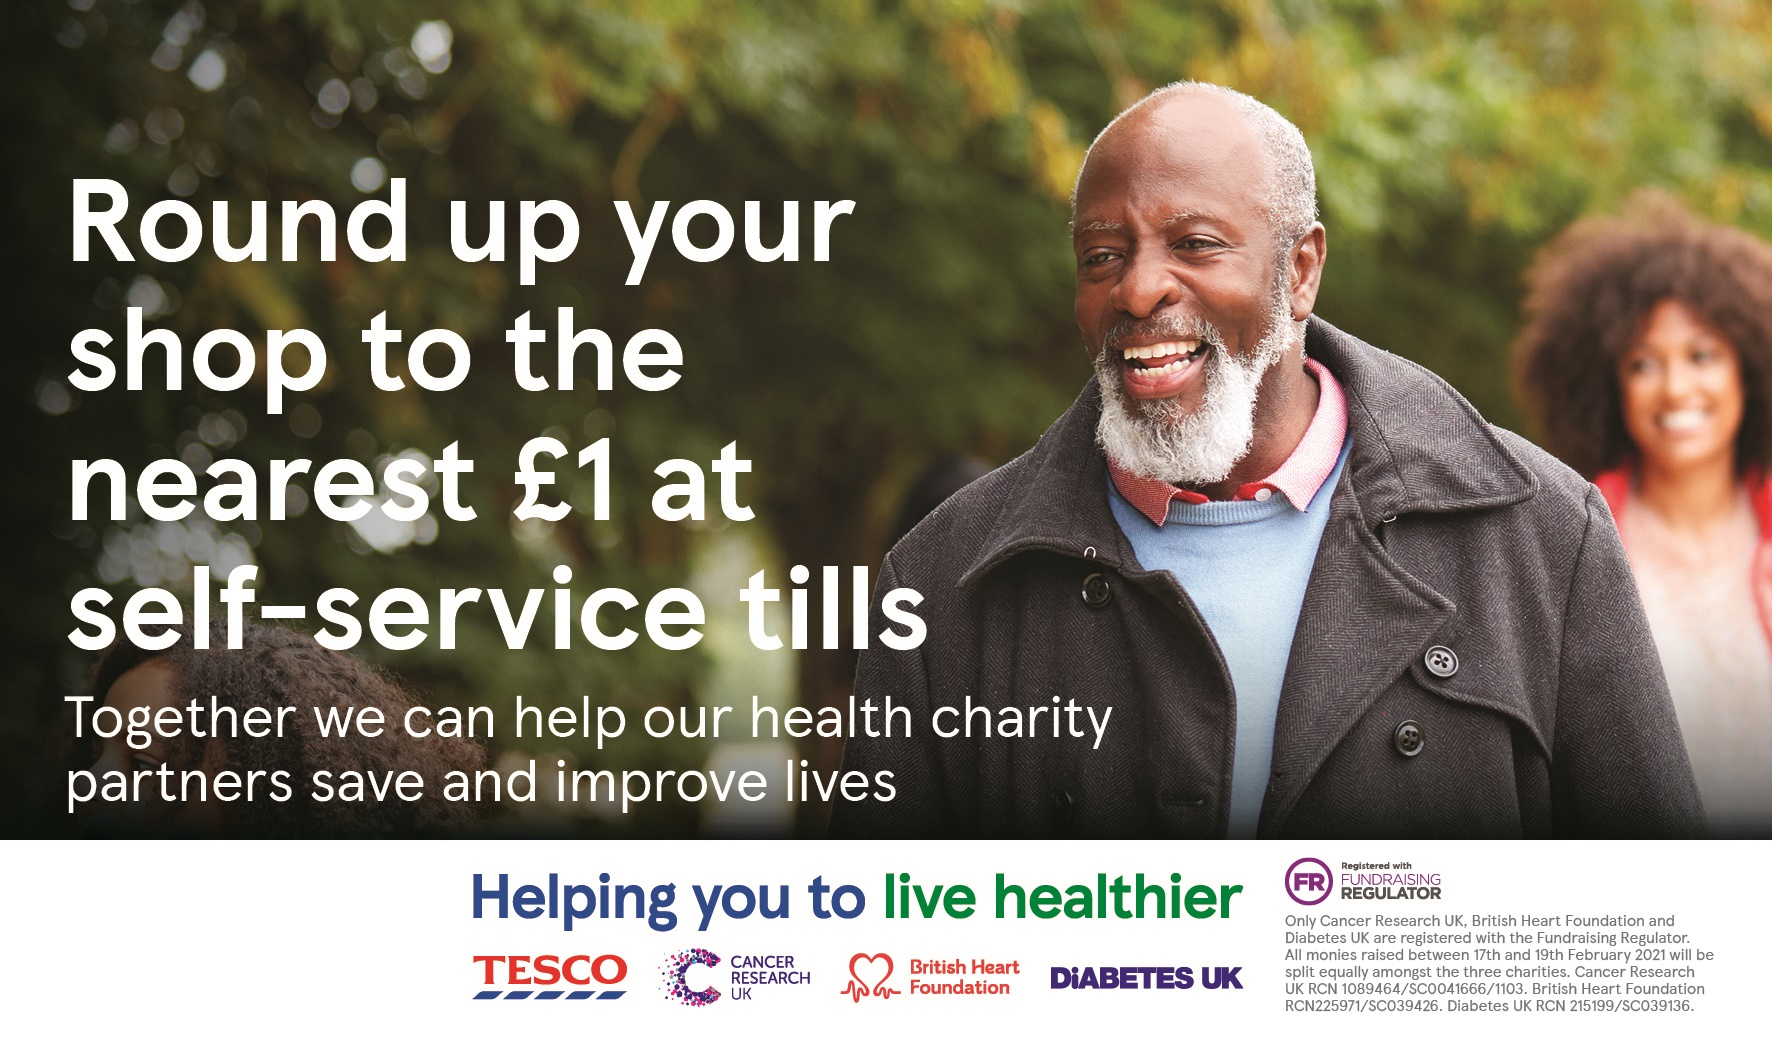 Tesco Health Charity Partnership fundraising appeal in Newry – shows a little help can go a long way - Newry Tesco - Newry Newspapers